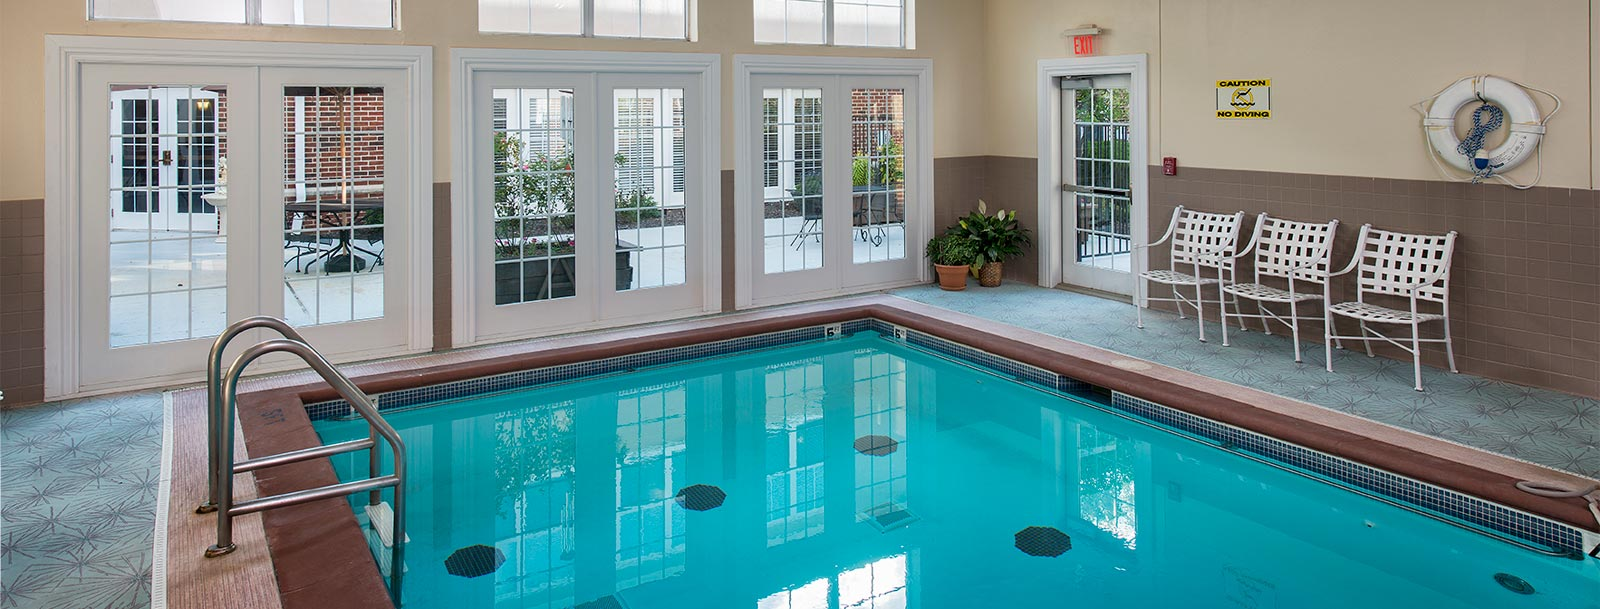 Senior living in Olathe care about your health and wellness